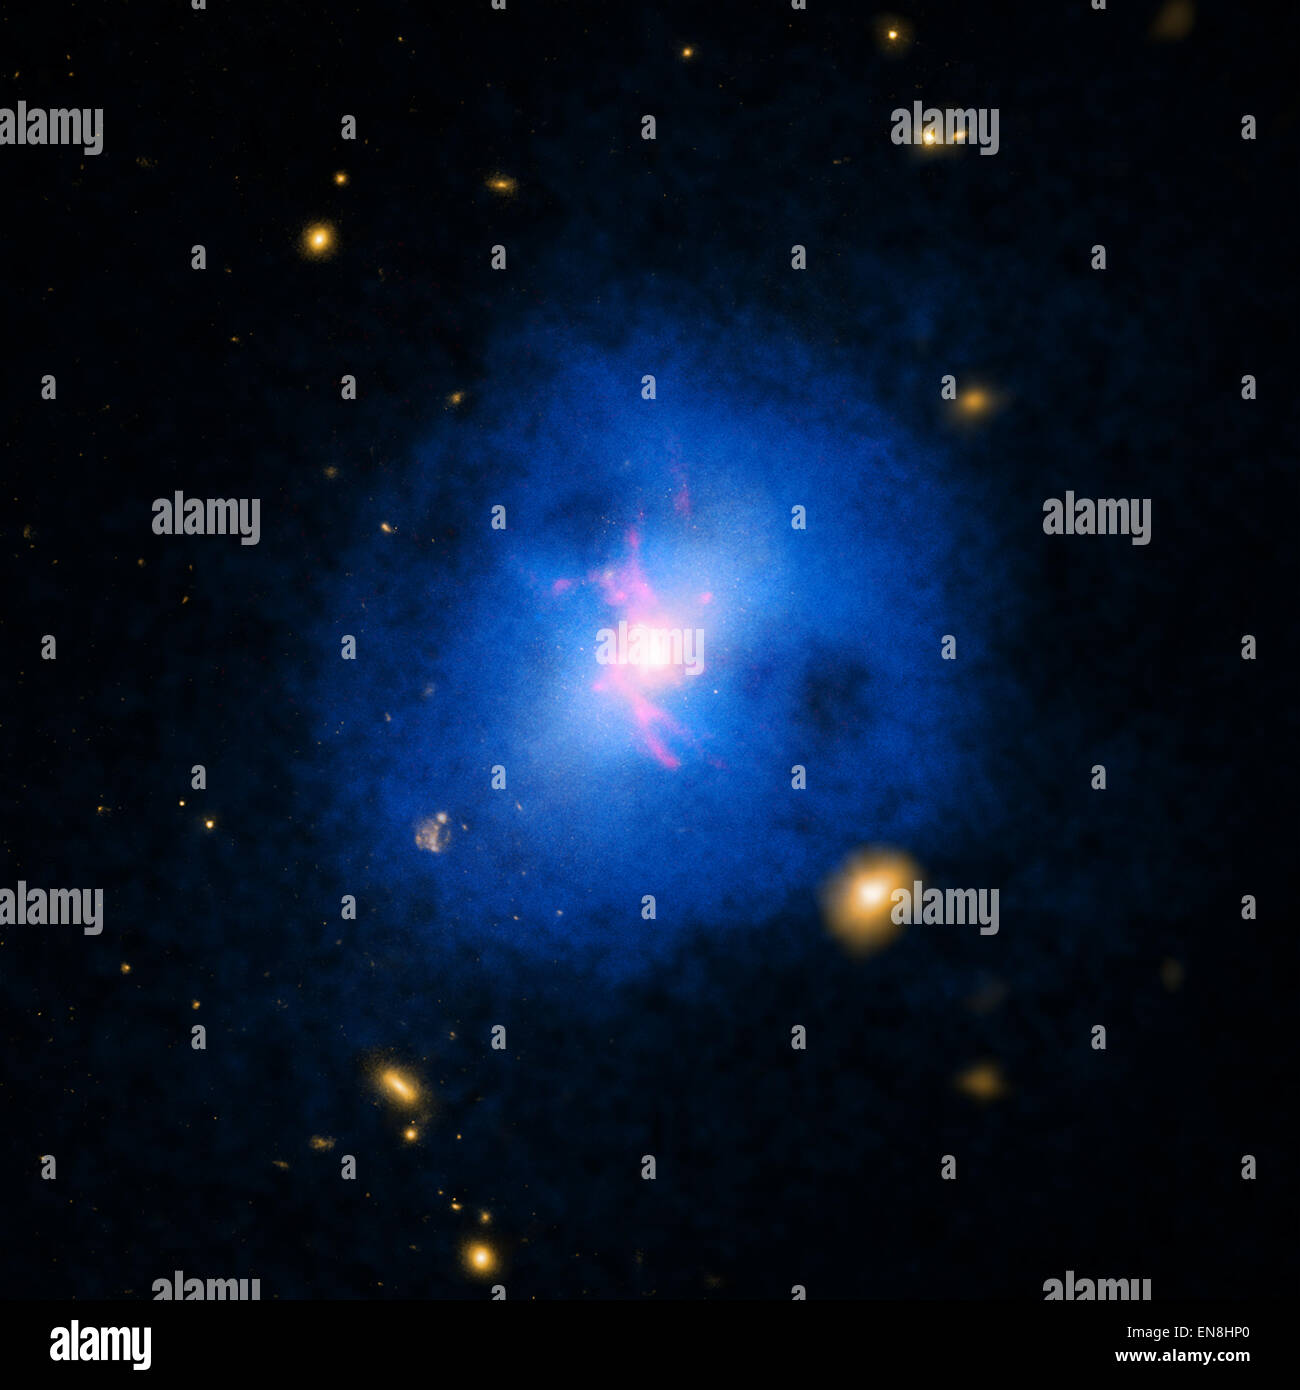 Chandra telescope made a family portrait of a cluster of NGC 6231 52